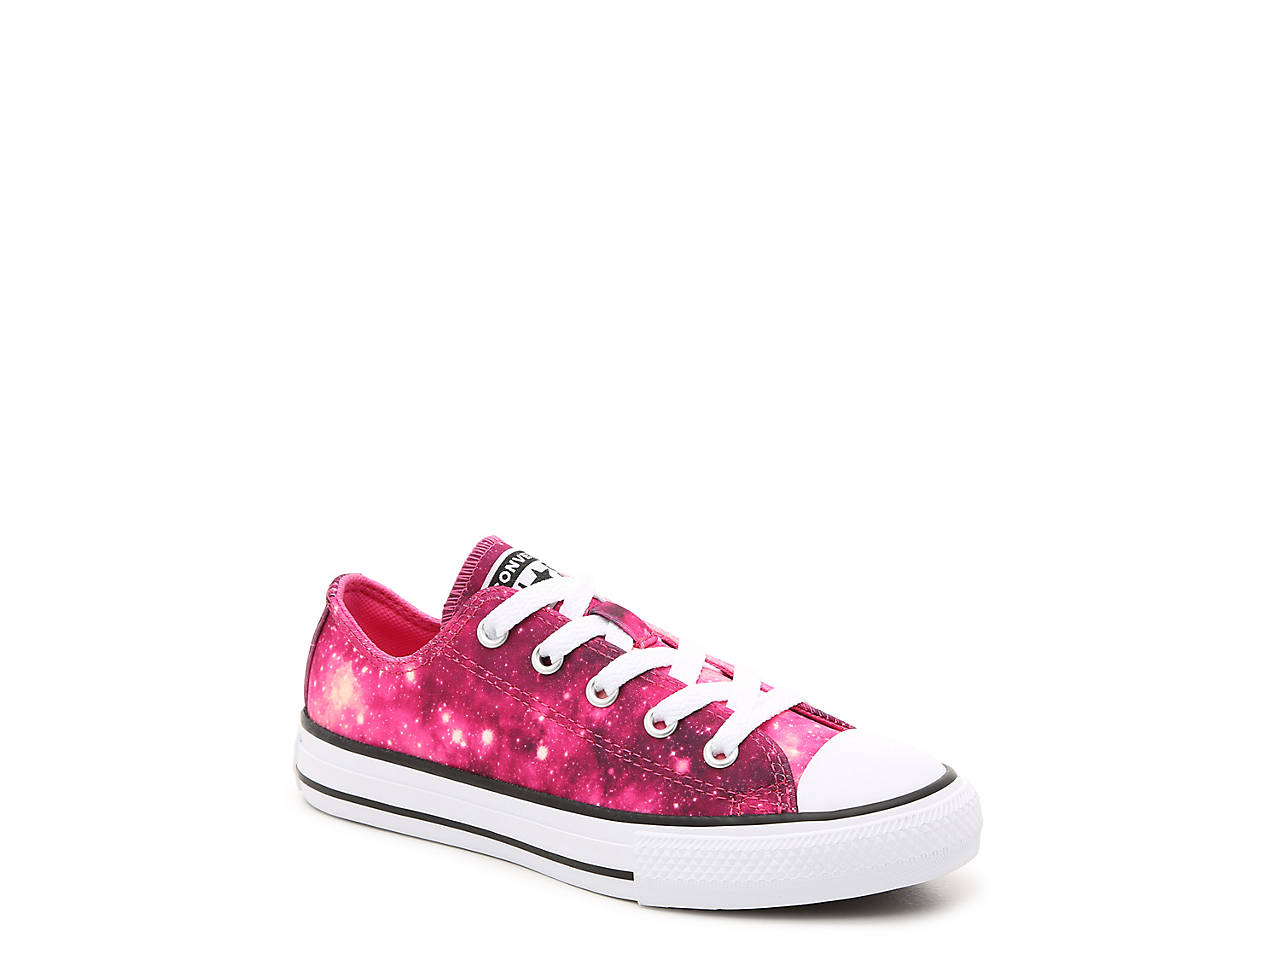 25d6bc0024 Chuck Taylor All Star Miss Galaxy Sneaker - Kids'